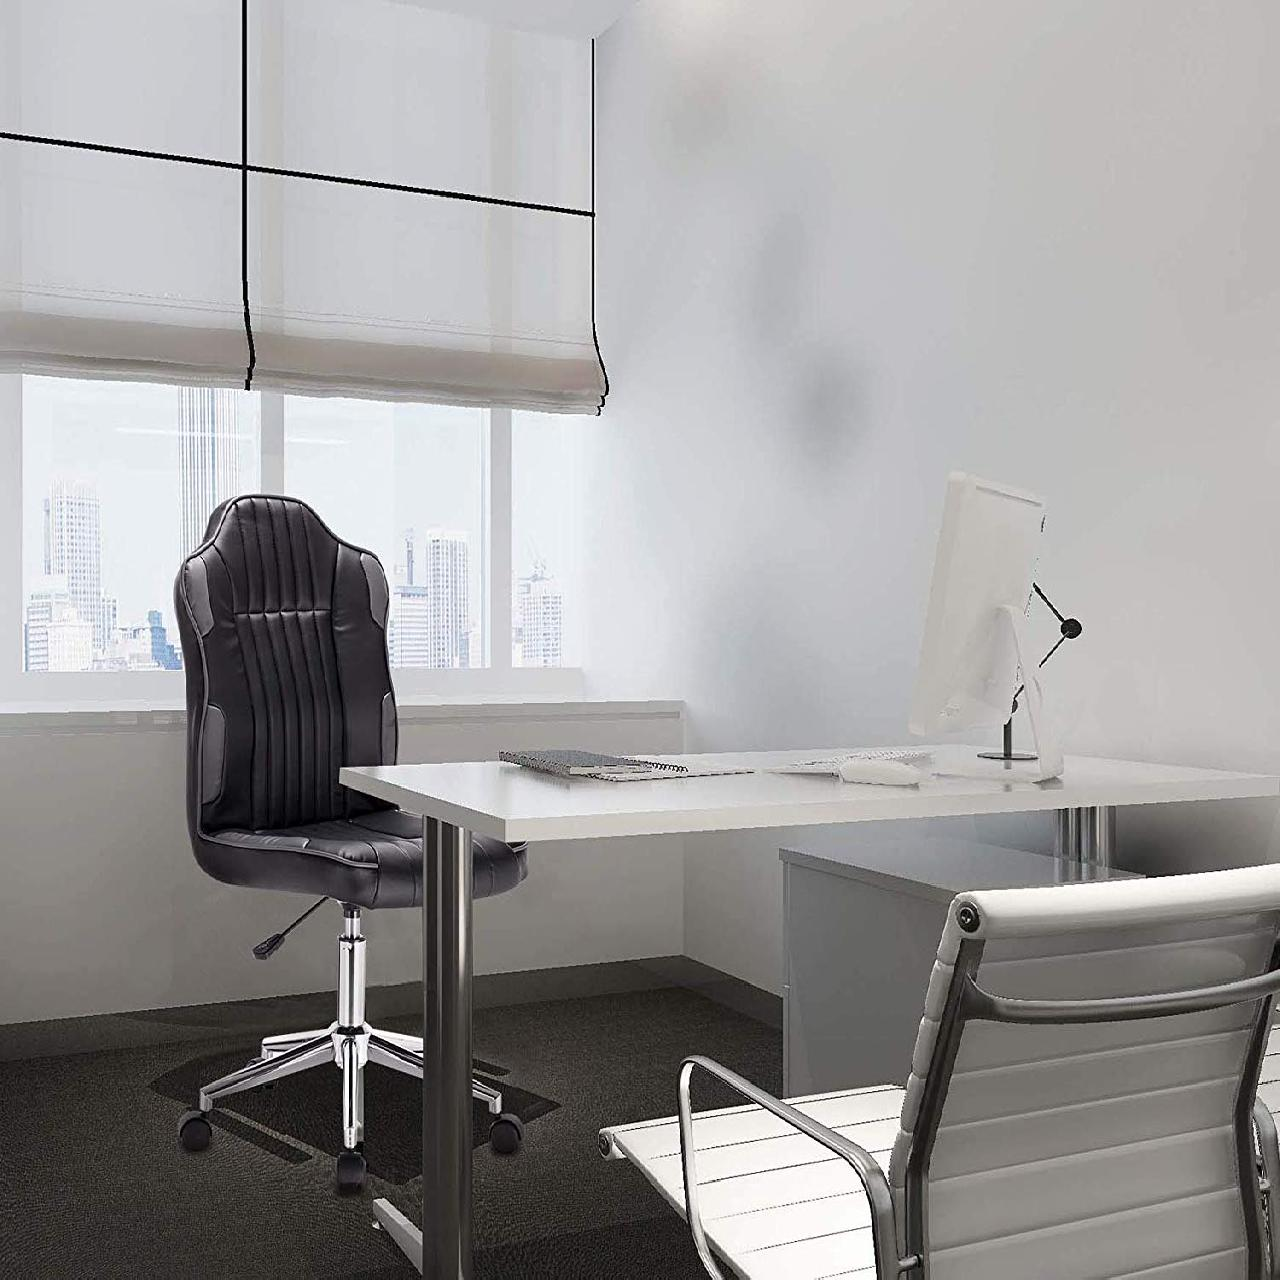 - Office Stool Made Of Synthetic Leather, Continuously Adjustable In